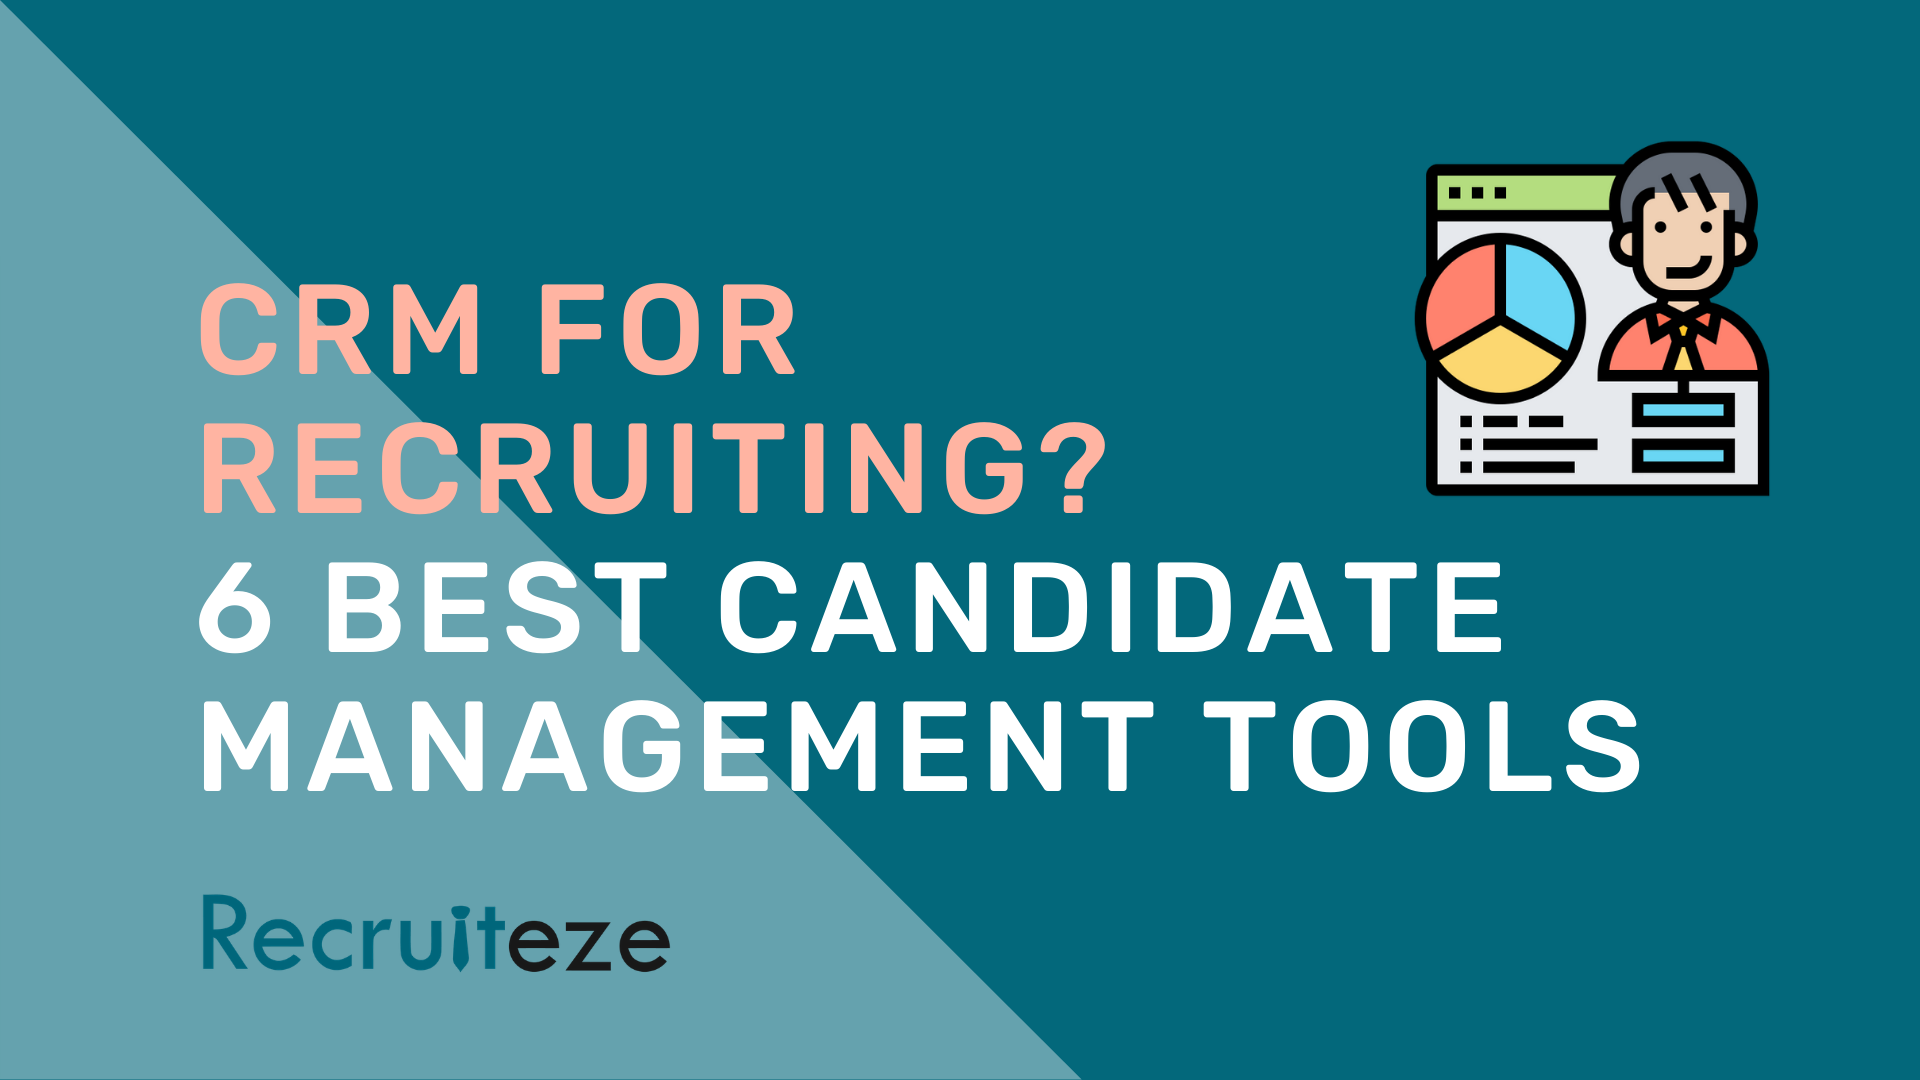 Recruiteze: CRM for Recruiting_ 6 Best Candidate Management Tools